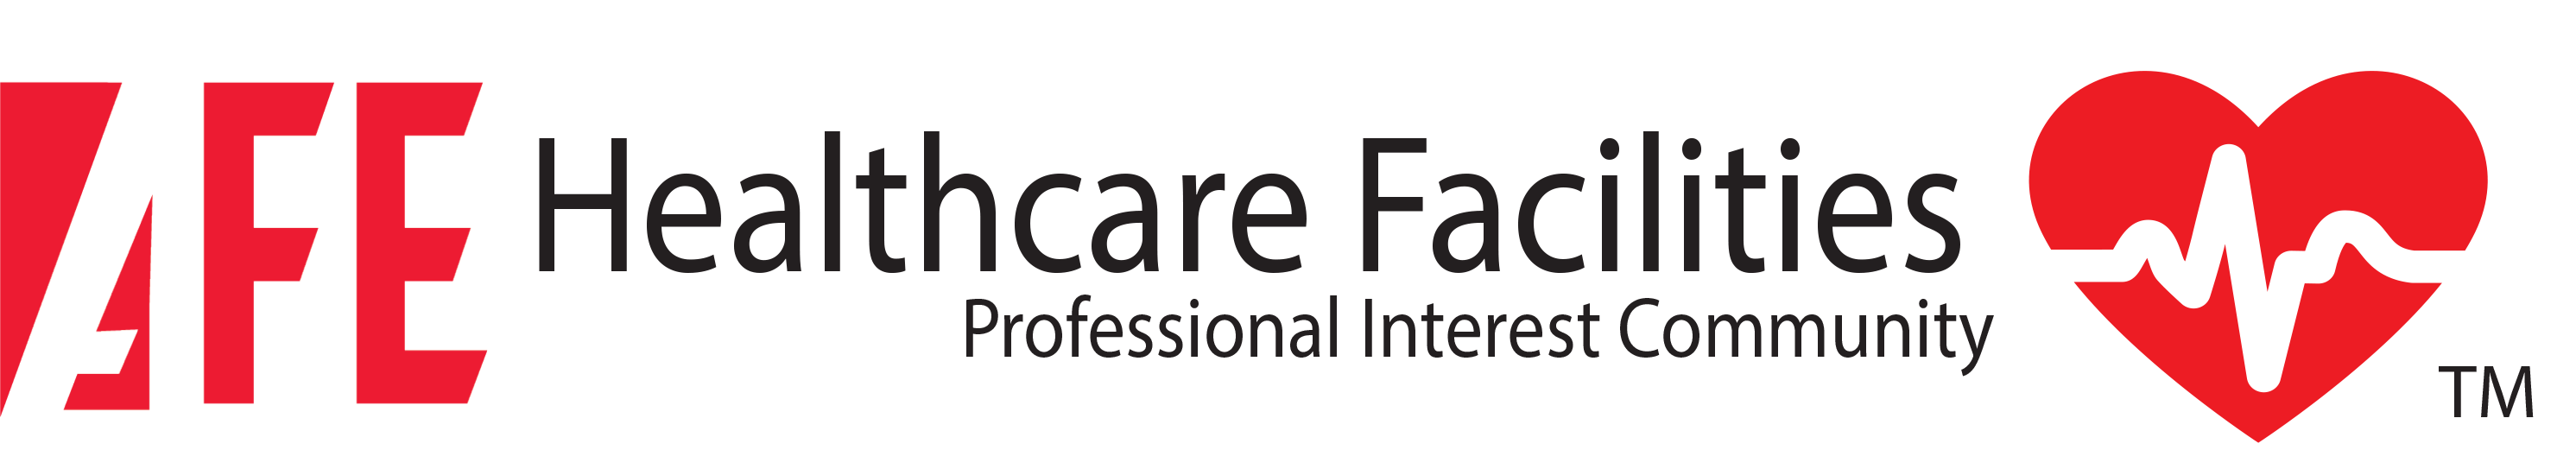 AFE Healthcare Facilities PIC Logo